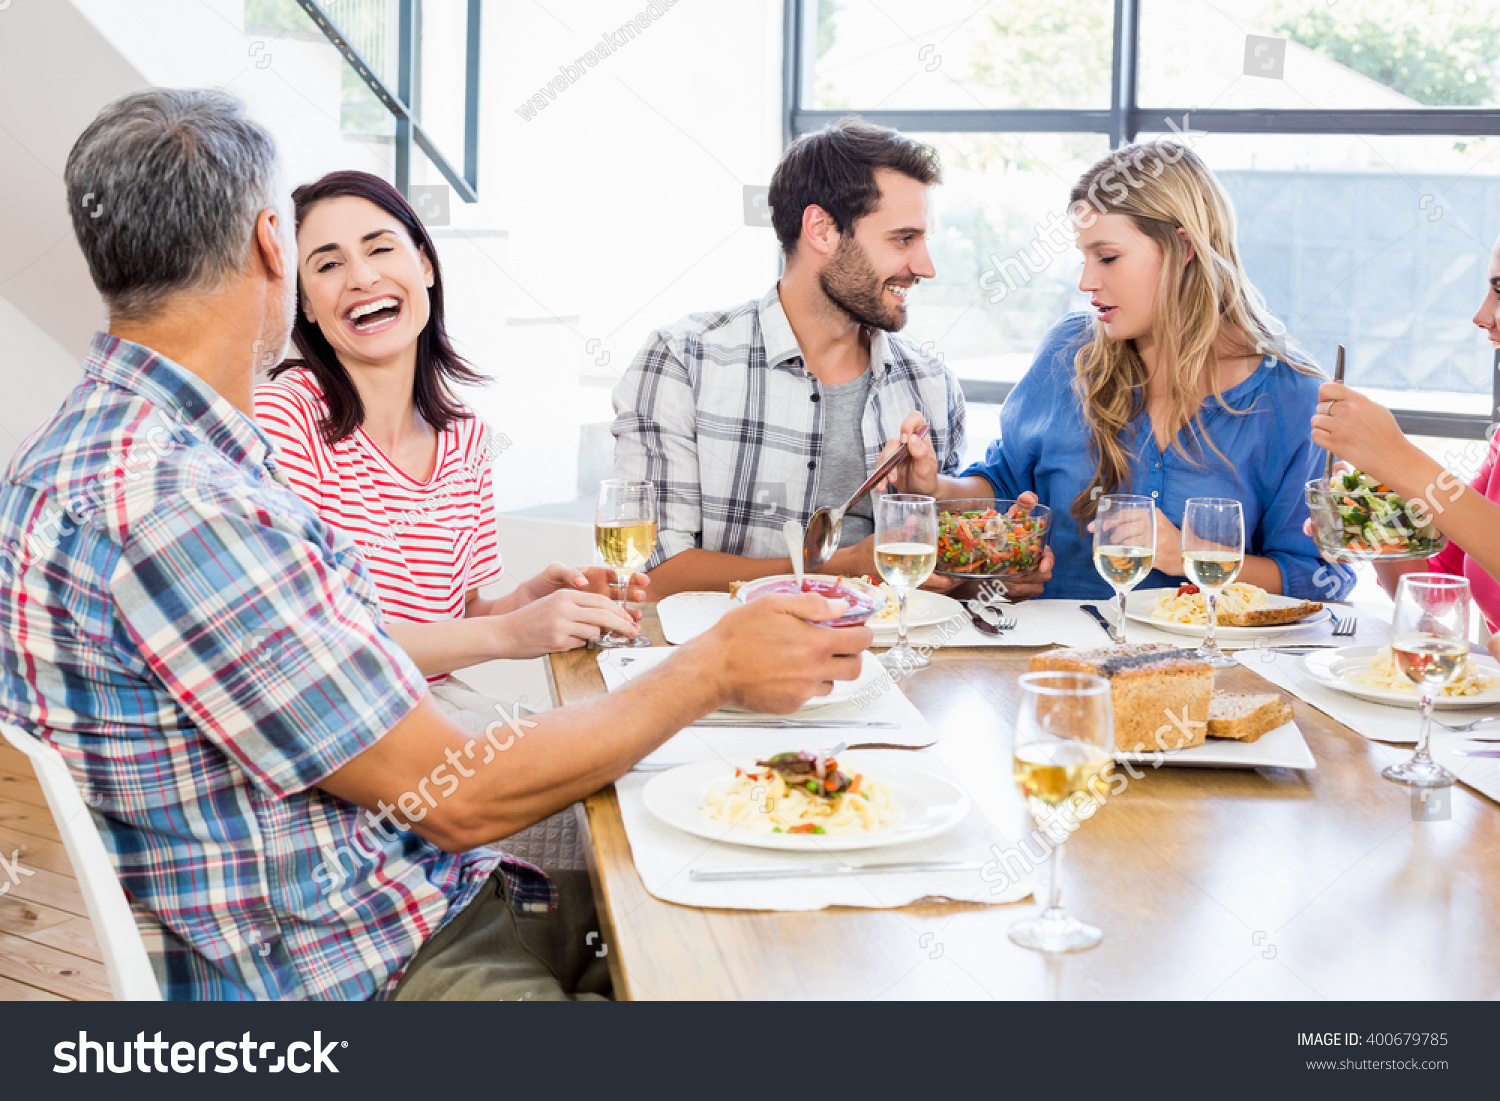 Friends Interacting While Having Meal Dining Stock Photo ...